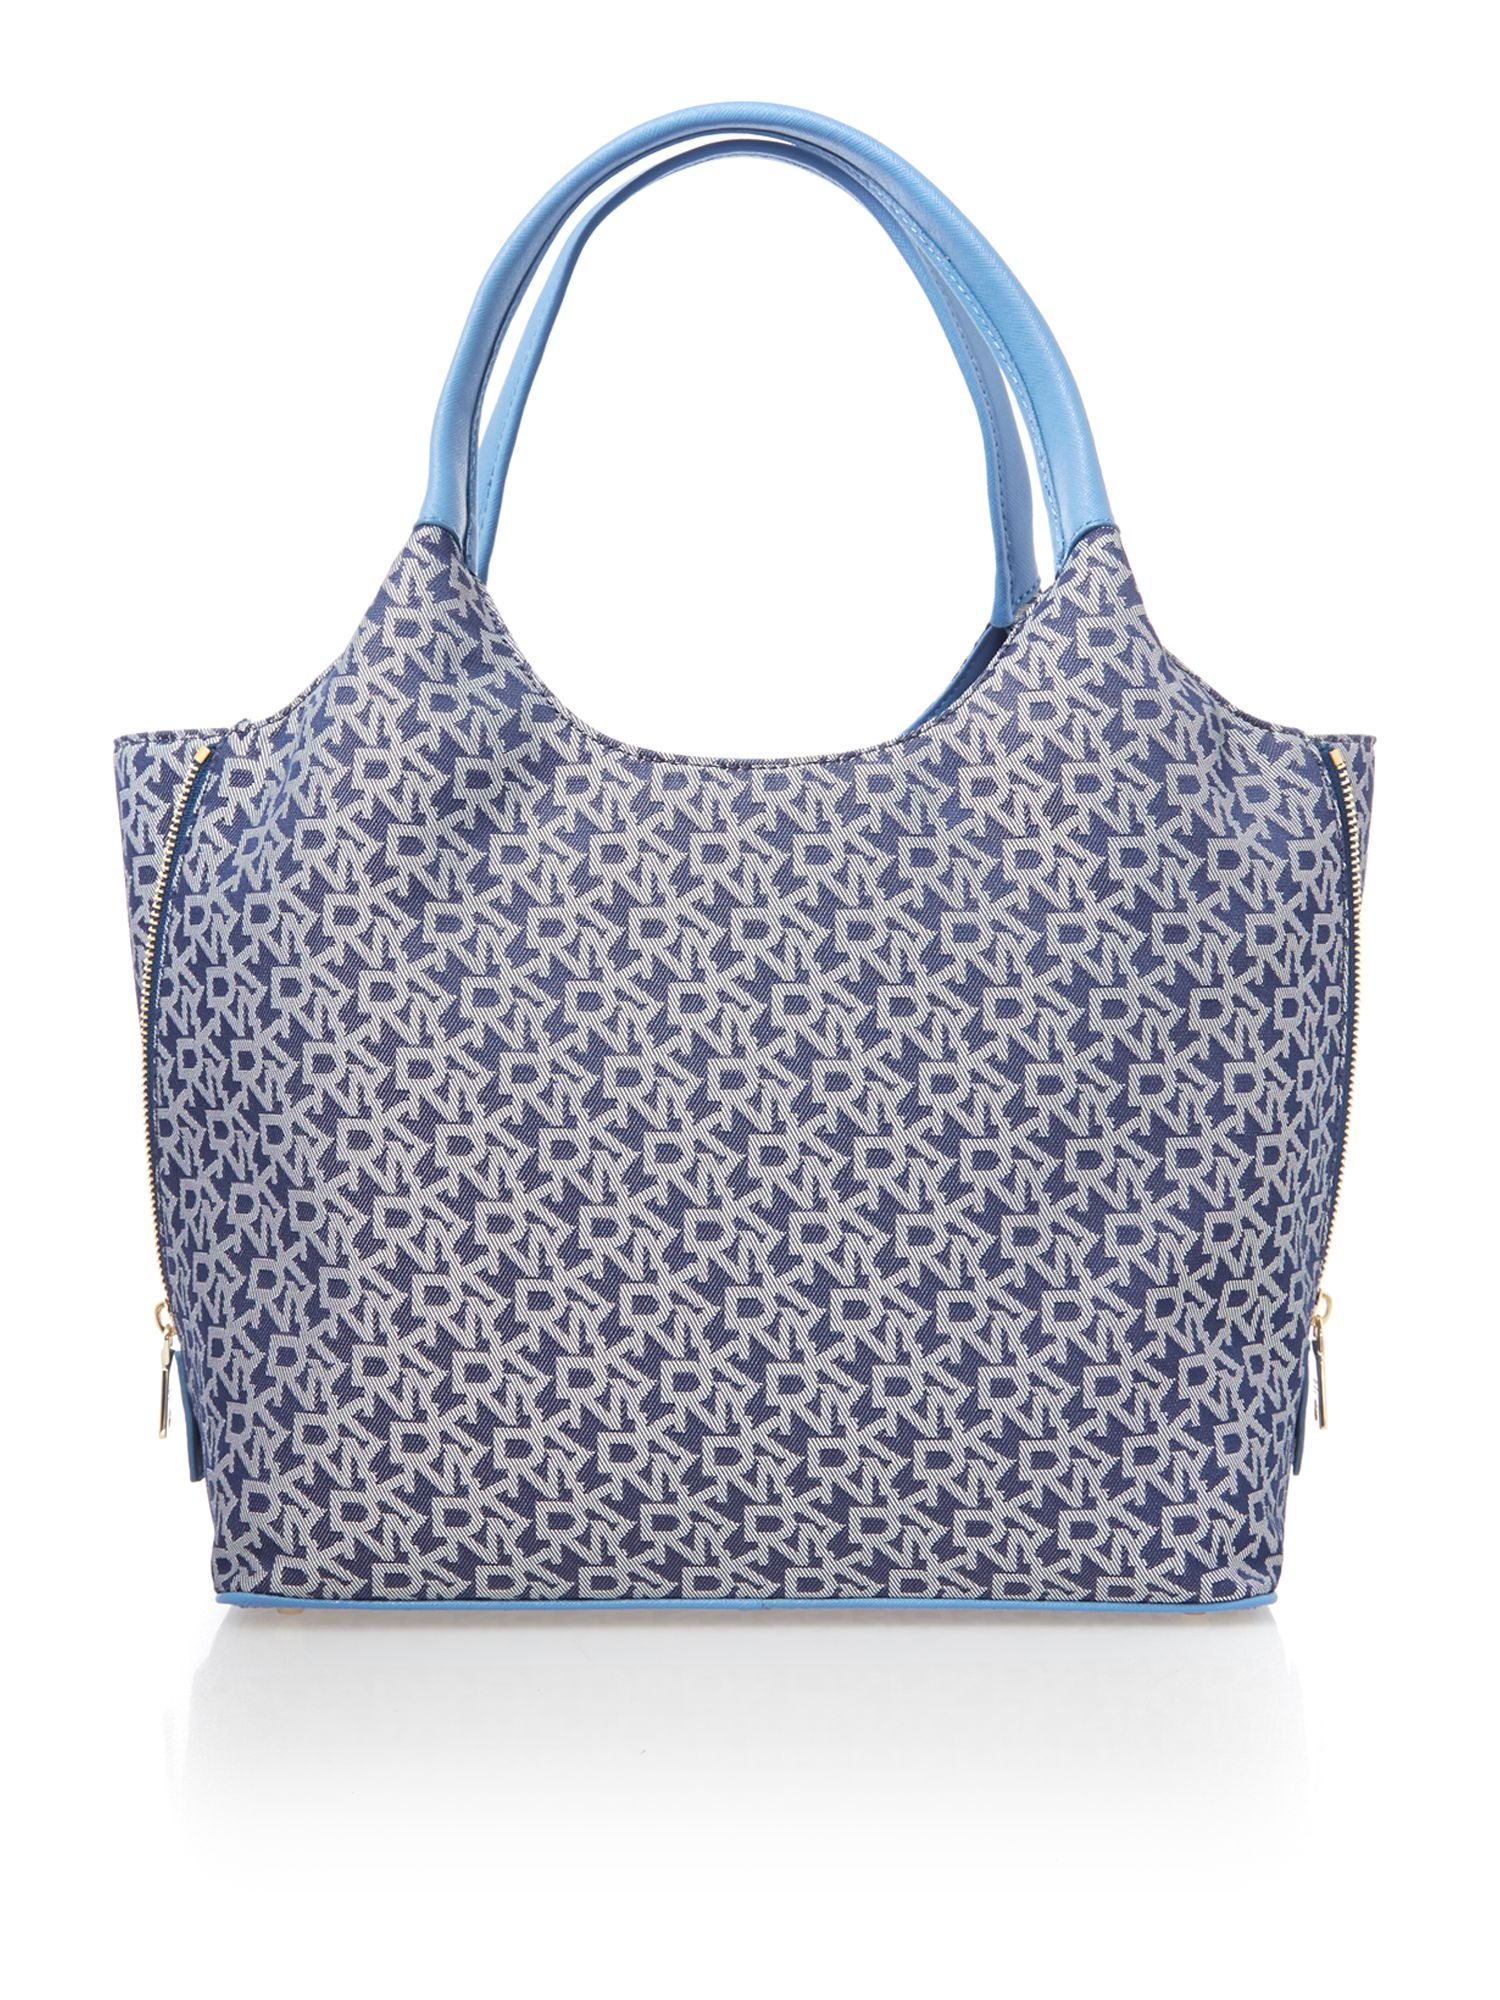 Saffiano blue tote bag